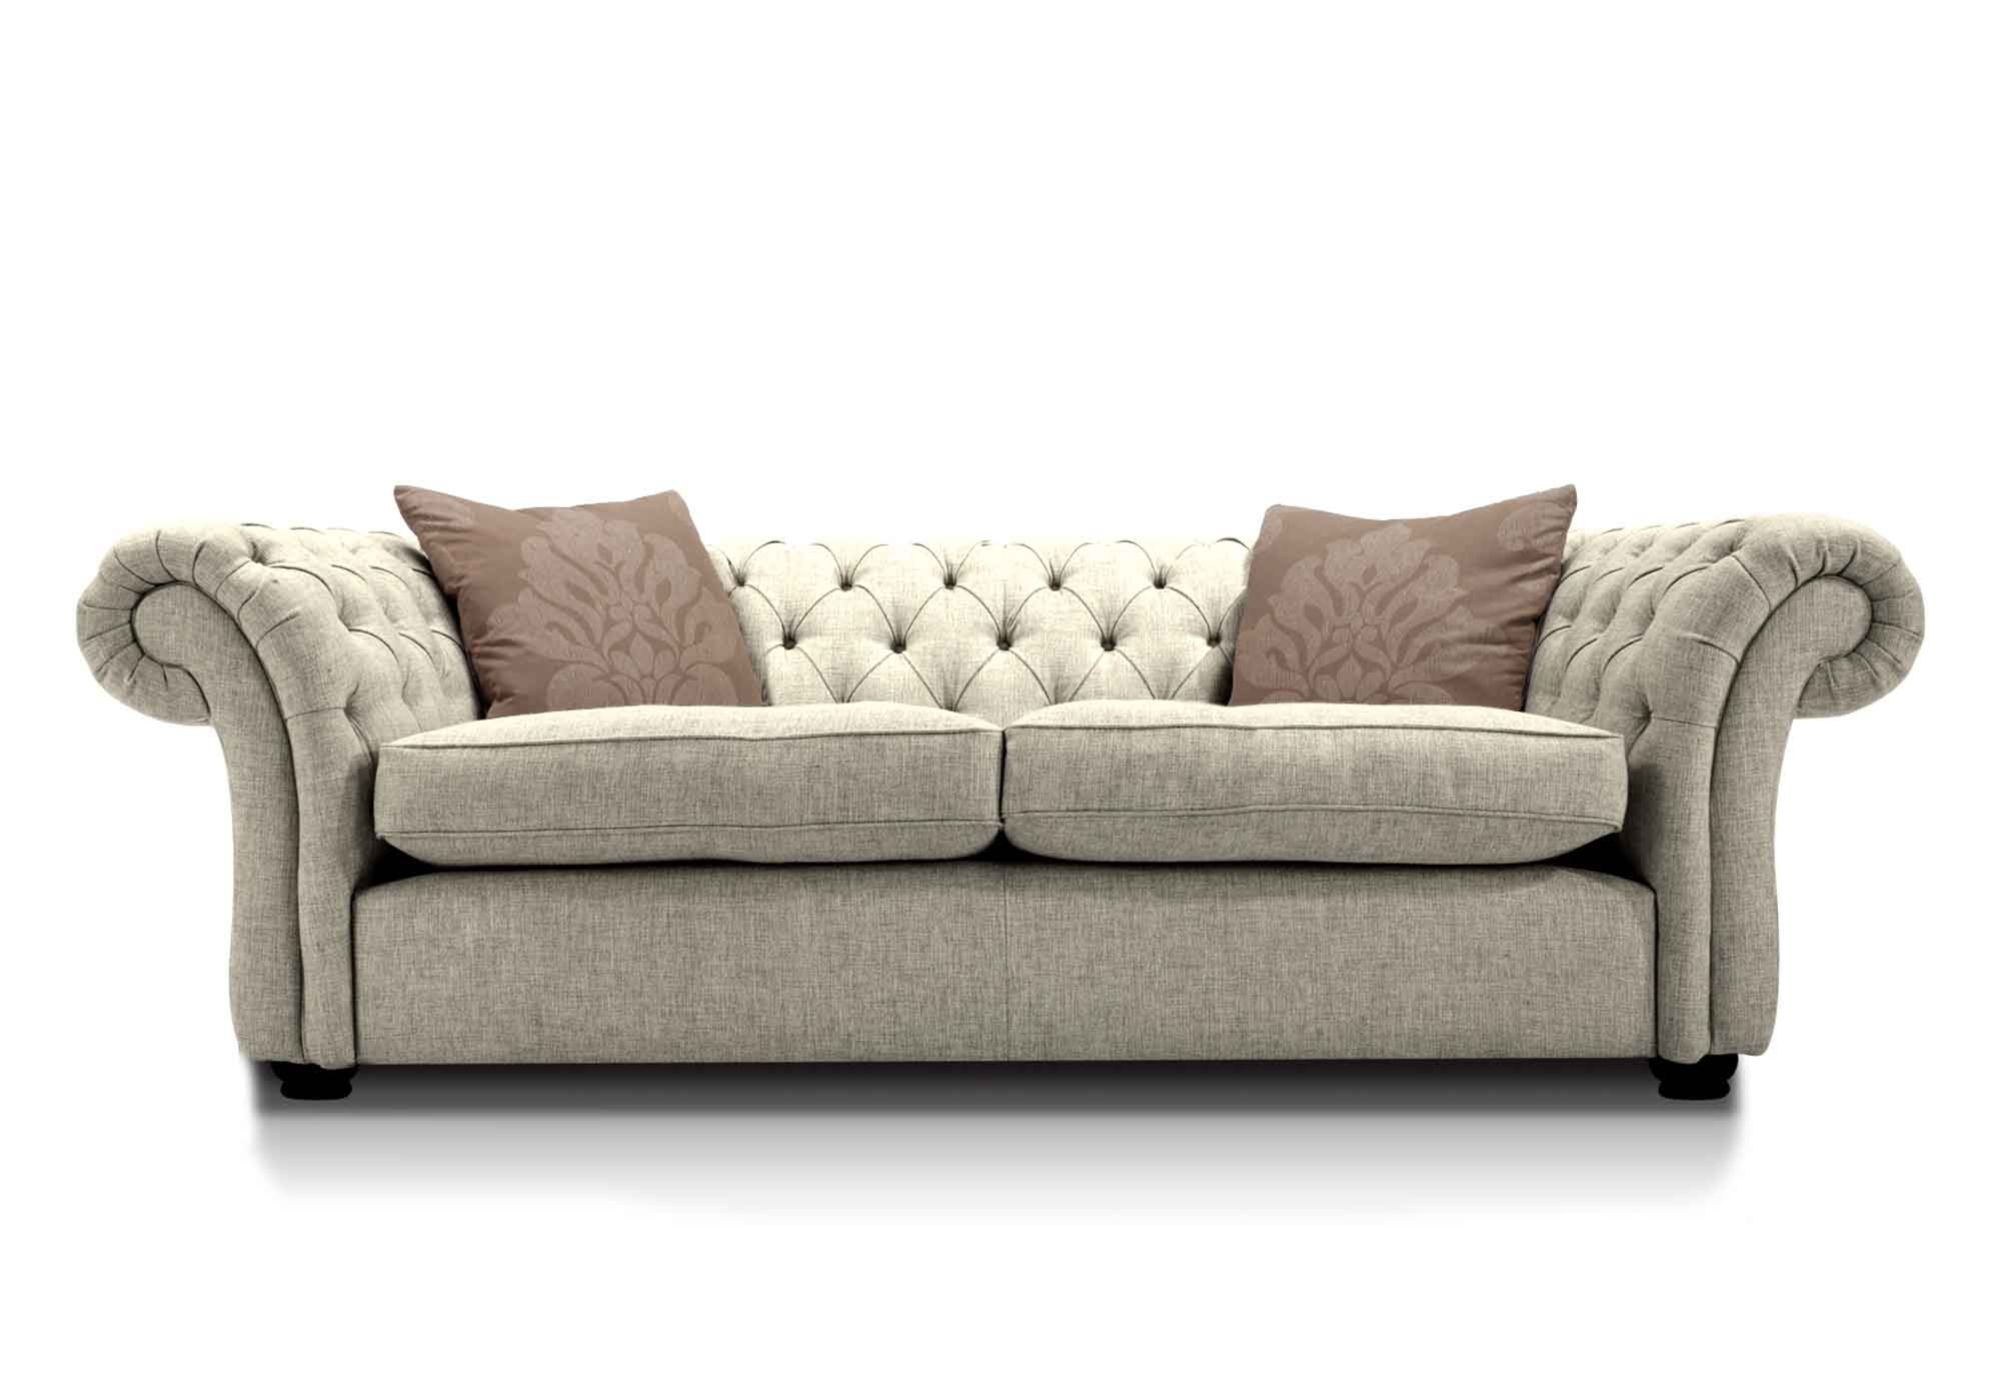 2 seater sofa bed furniture village material for cover westbridge langham place at living room sets ideas